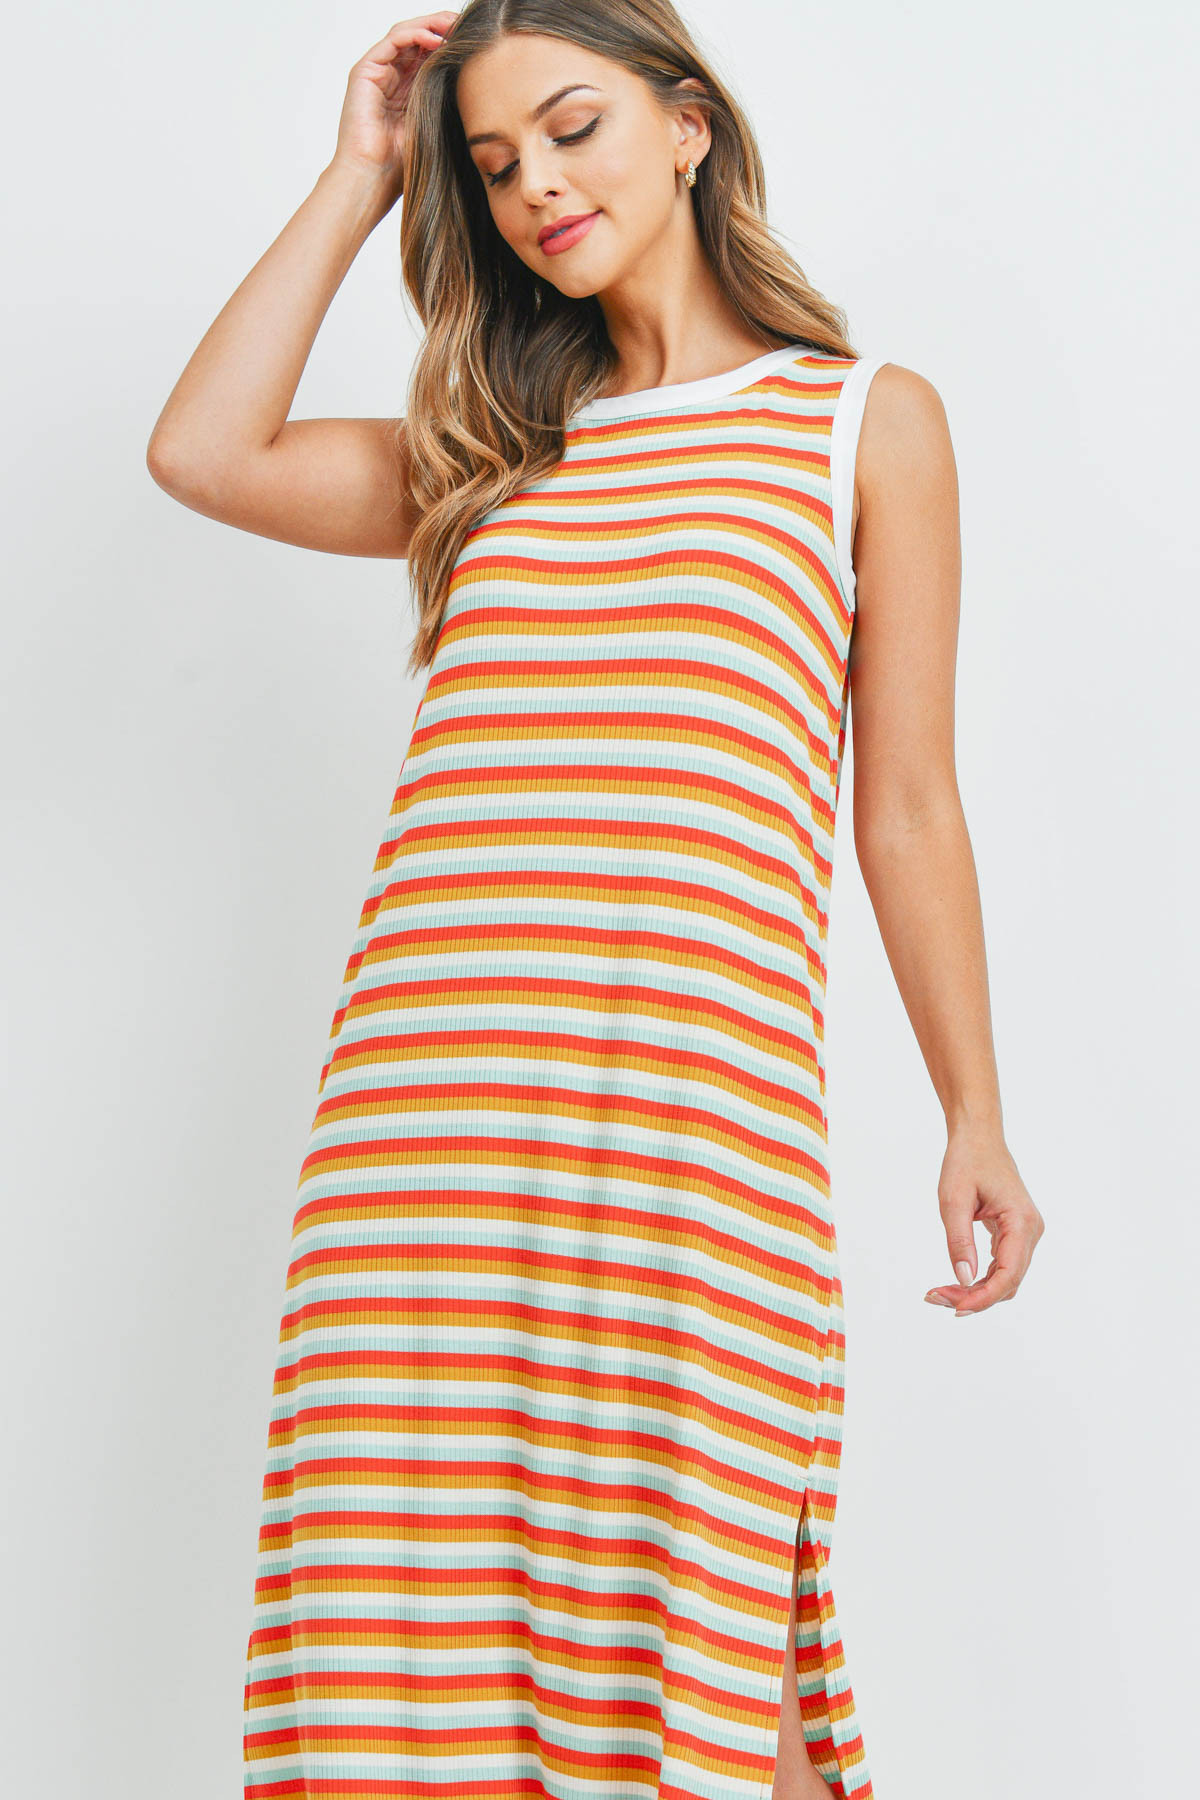 S14-6-2-PPD1106-DKCRLMUMNT - RIB MULTI-COLOR STRIPES MAXI DRESS WITH SIDE SLIT- DARK CORAL/MUSTARD/MINT-IVORY 1-2-2-2